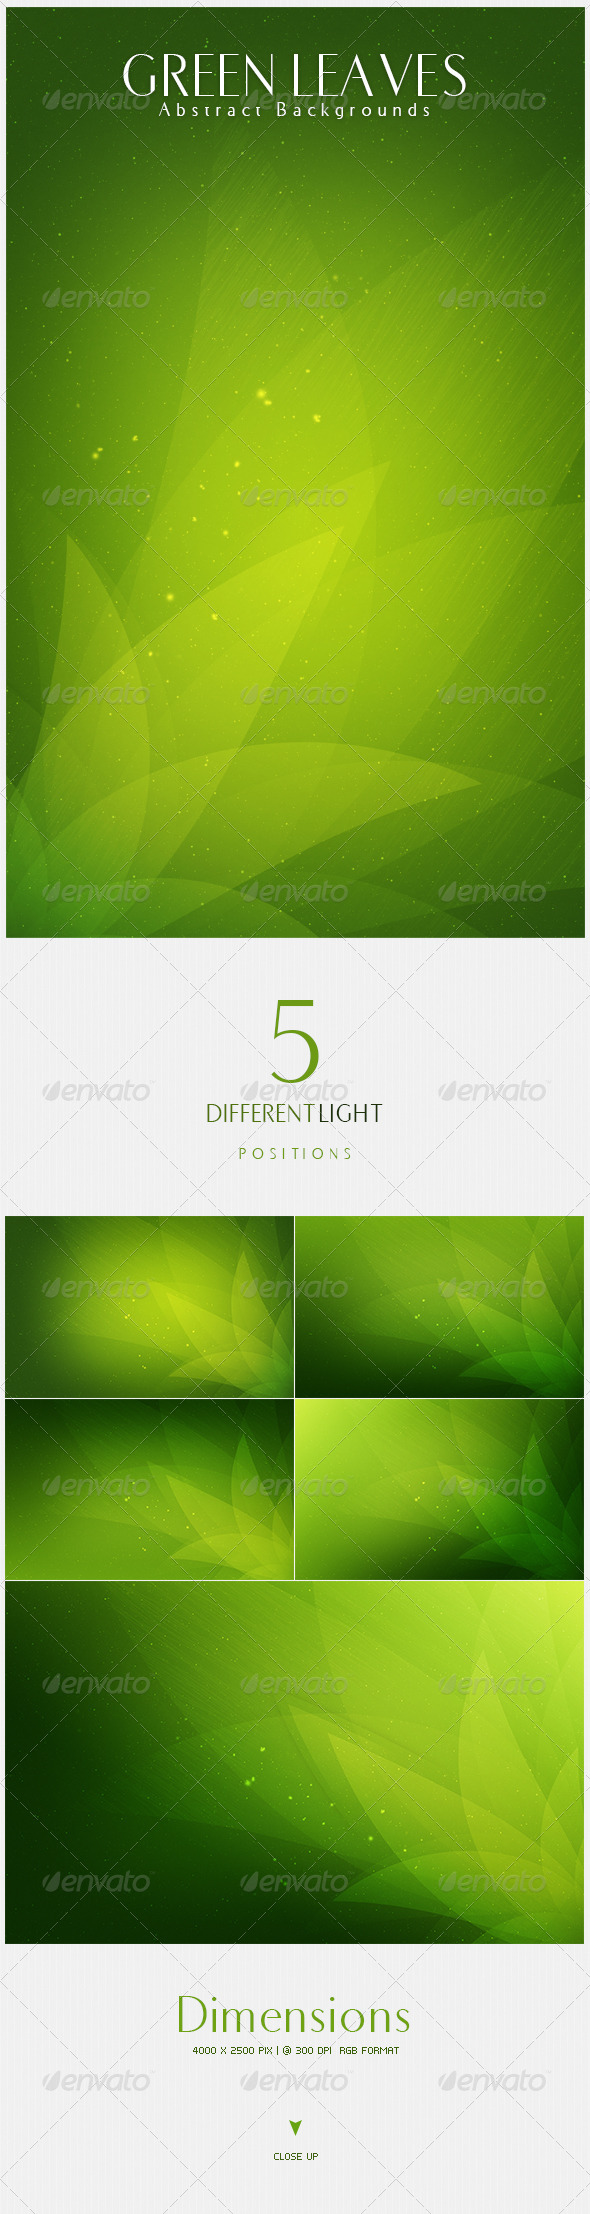 GraphicRiver Green Leaves Abstract Backgrounds V5 4637117